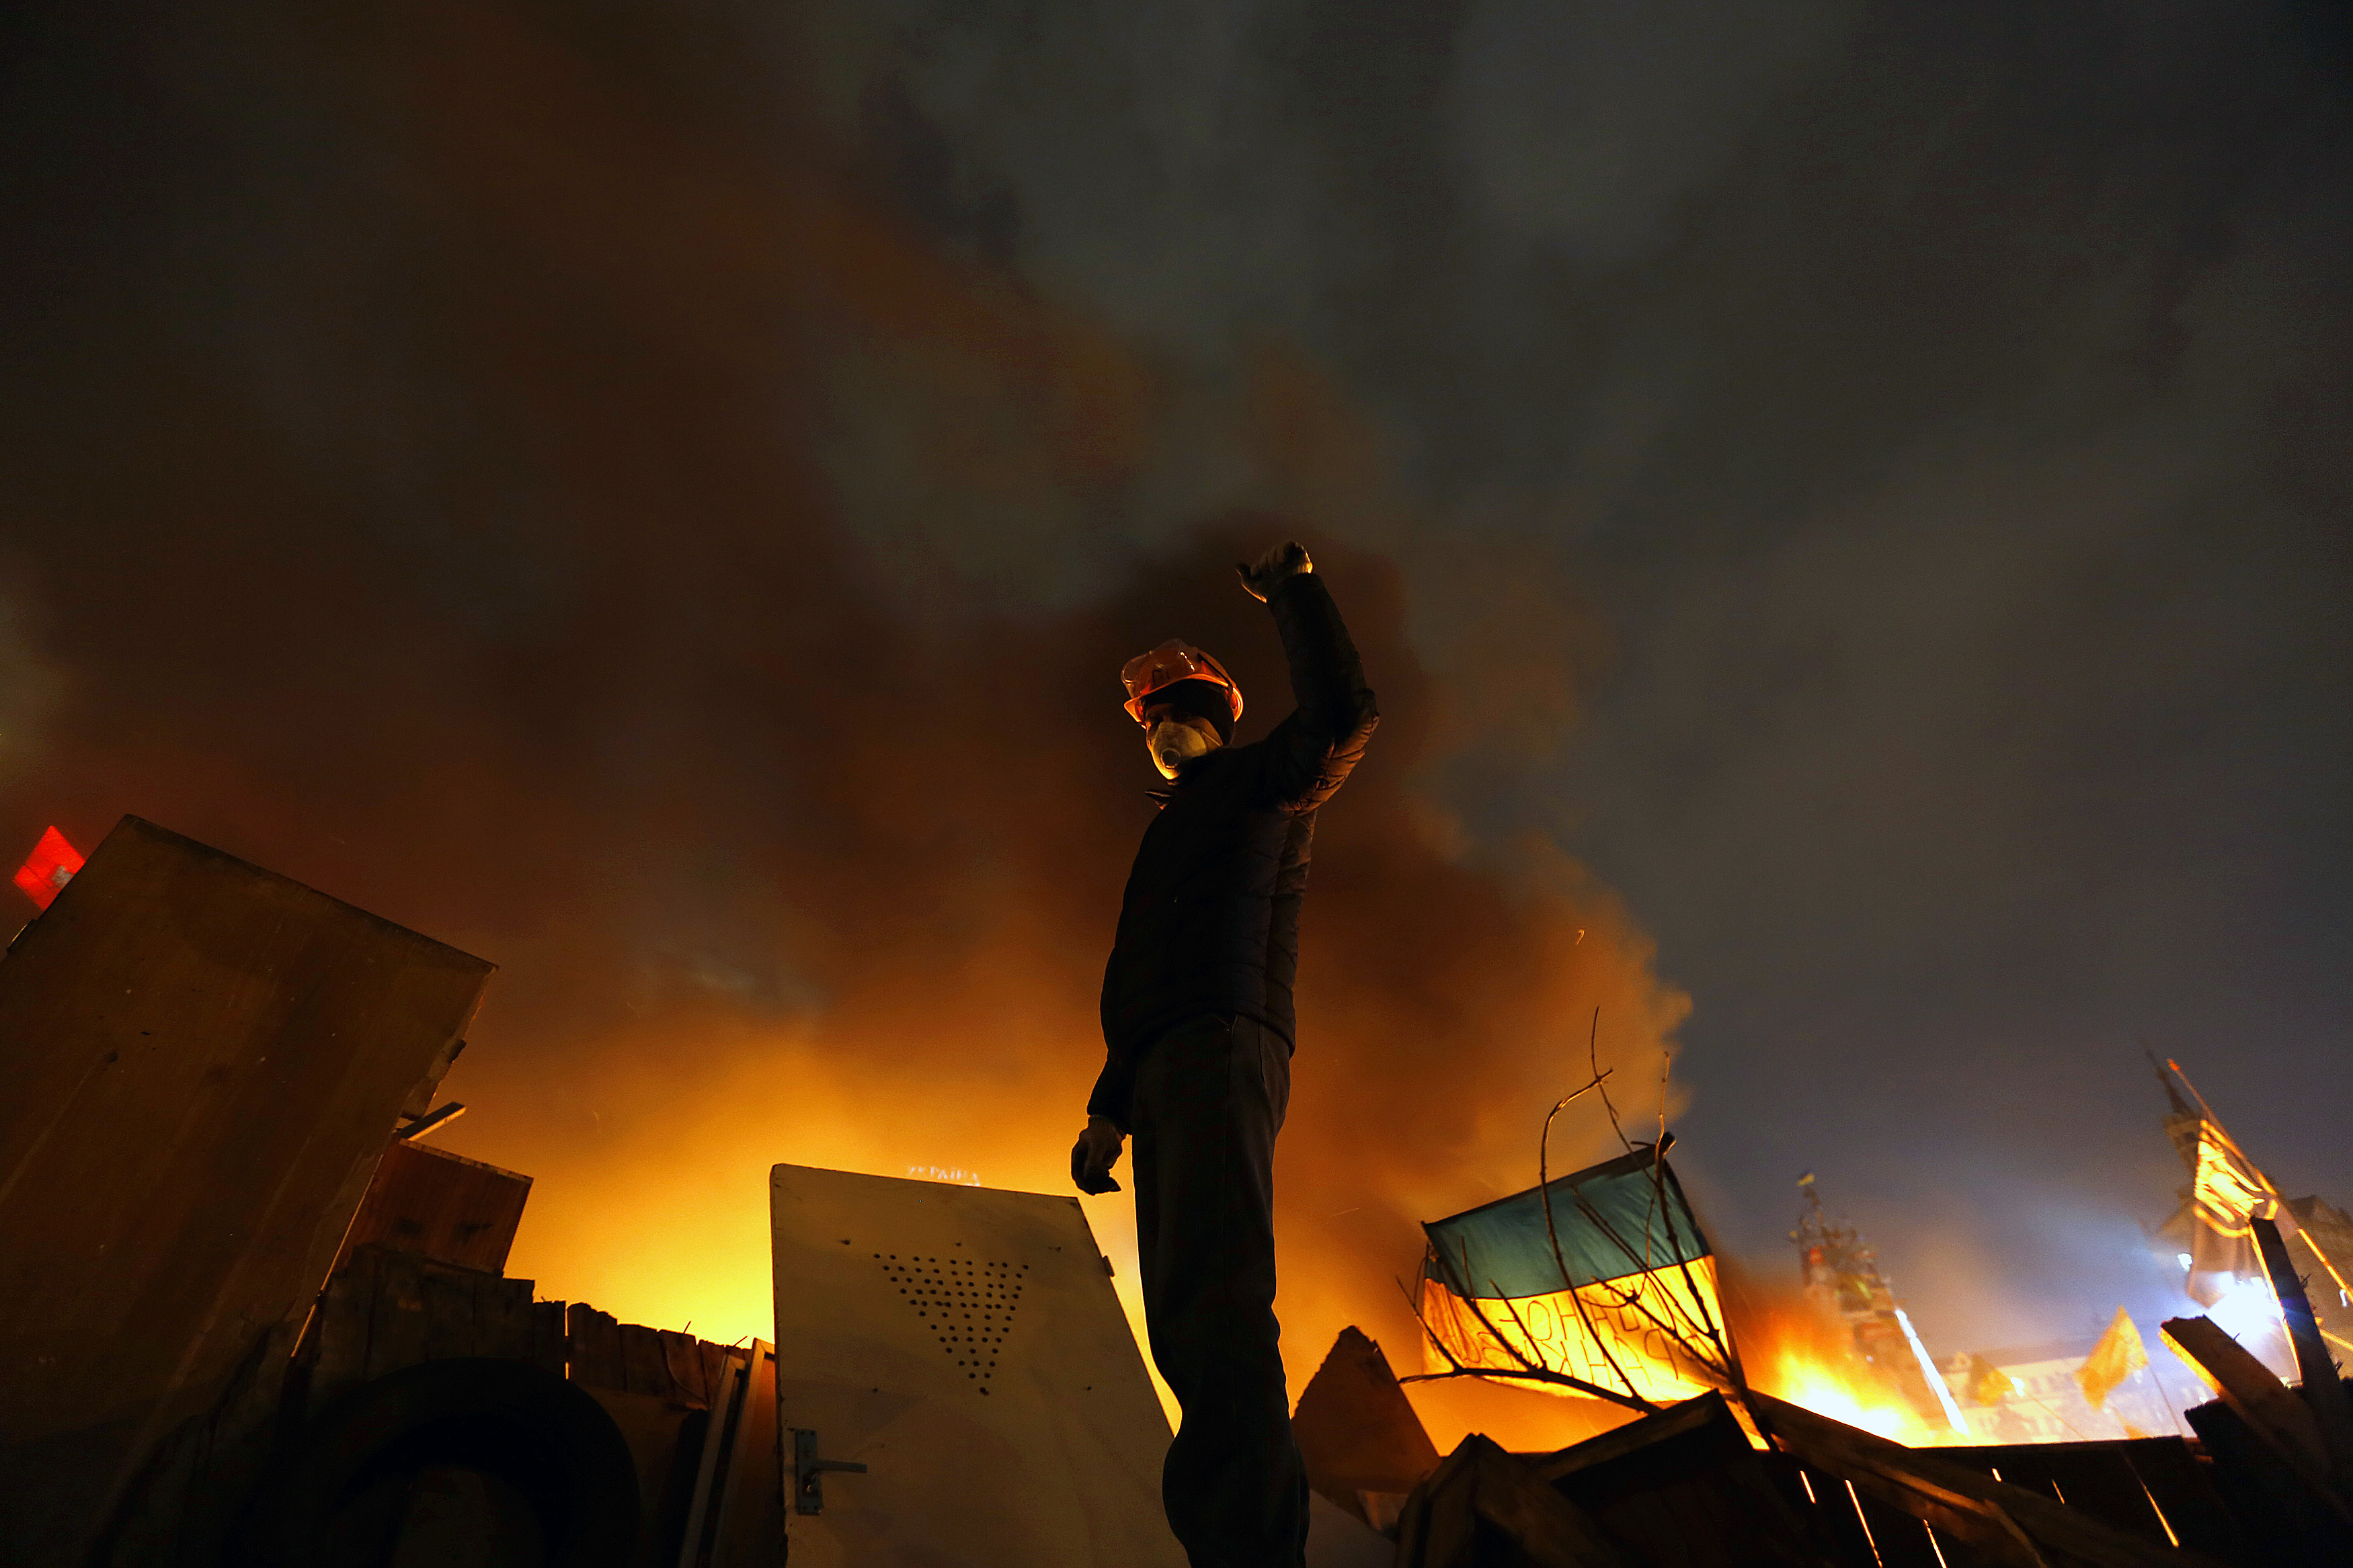 An anti-government protester stands behind burning barricades in Kiev's Independence Square on Tuesday. The international community on Wednesday urged restraint and threatened sanctions against those responsible for the violence.